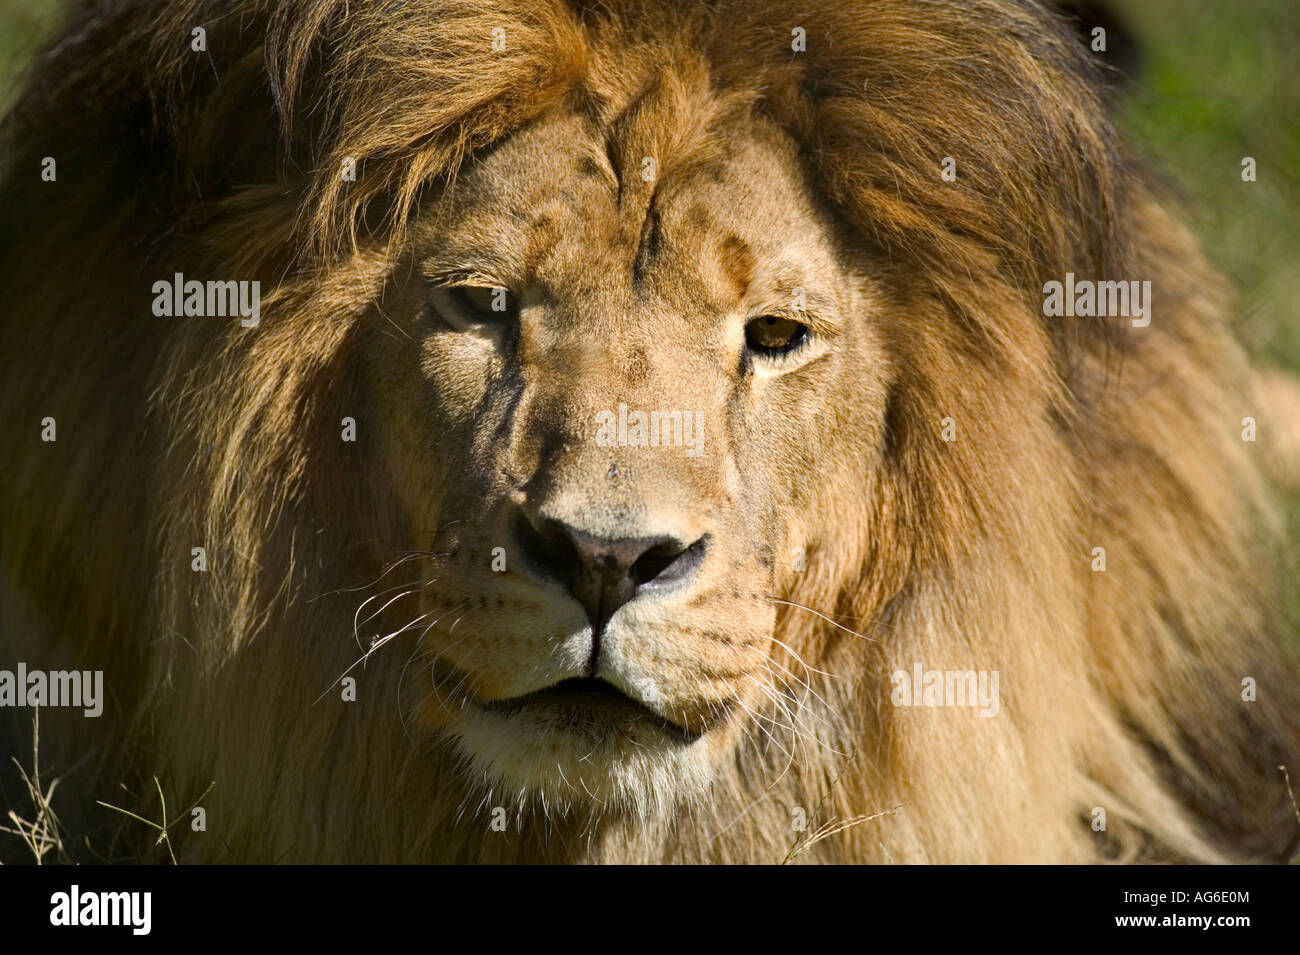 King Of The Jungle - Stock Image